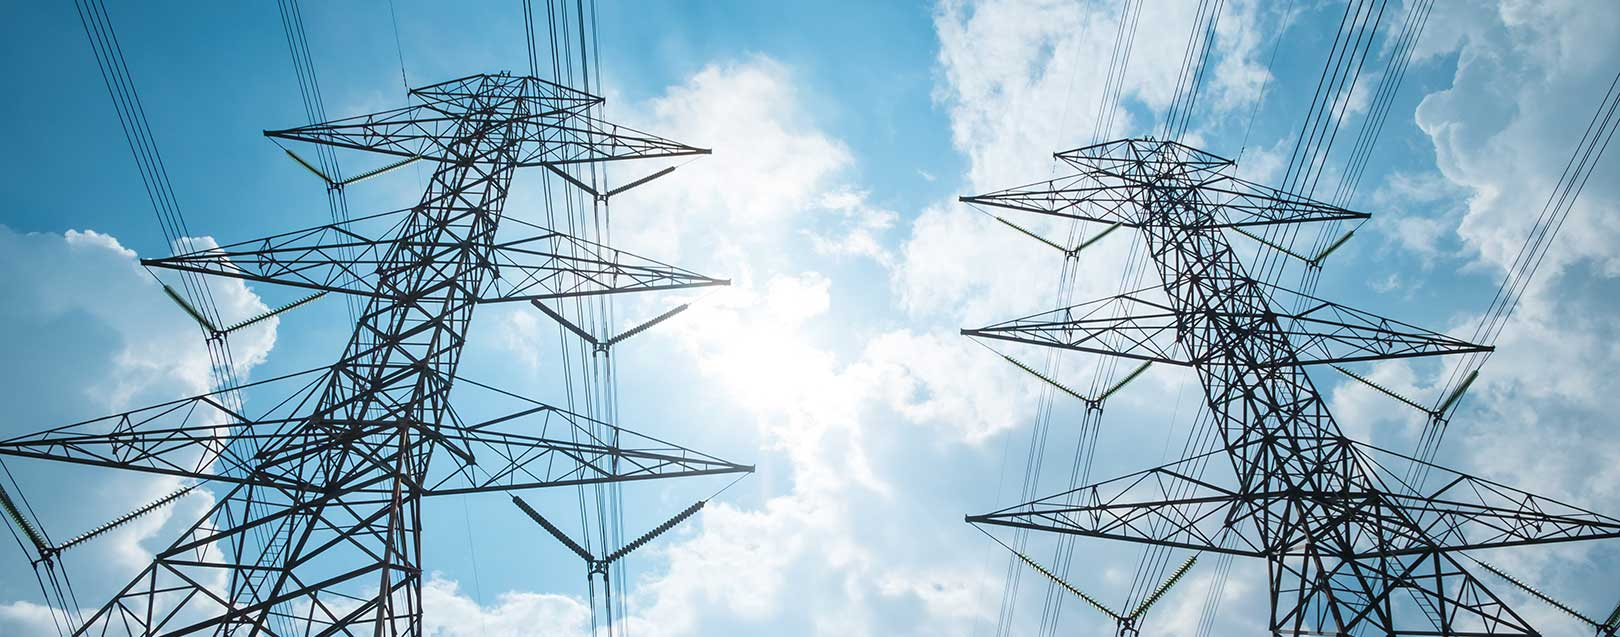 Cabinet approves BIMSTEC MoU for cross-border power grid interconnections